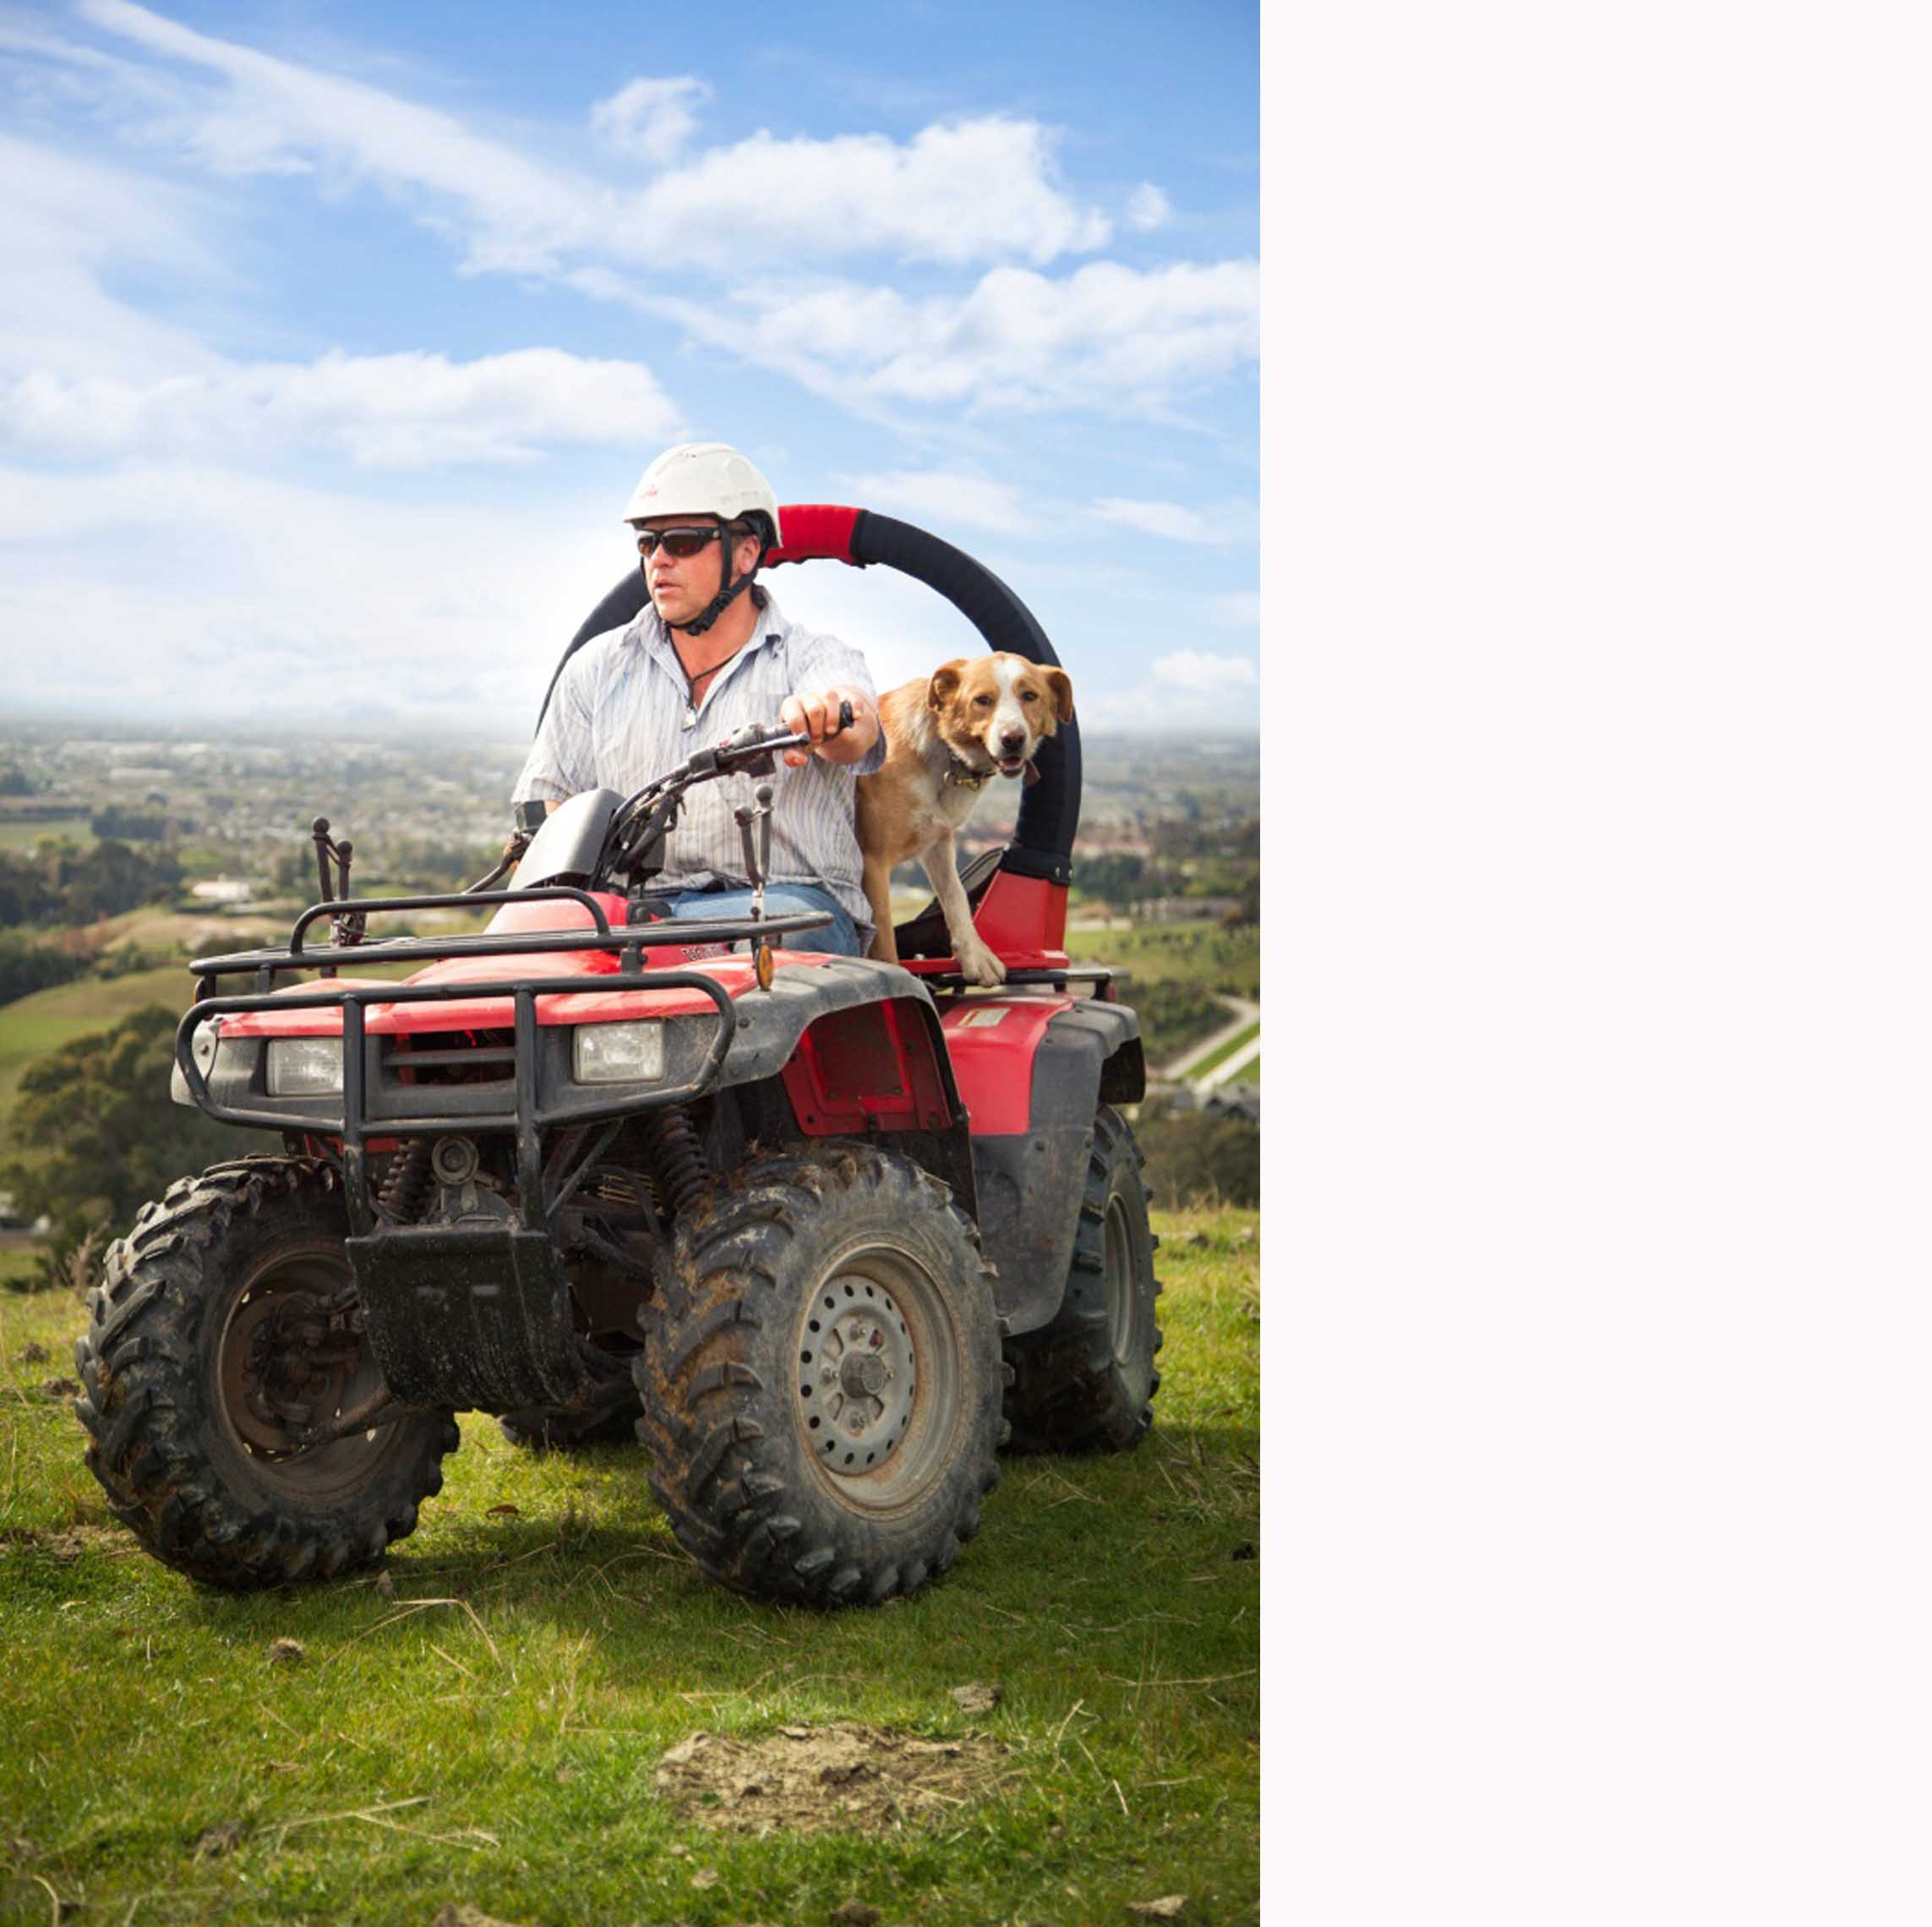 ATV Lifeguard - WorkSafe strongly recommends CPD's on quads